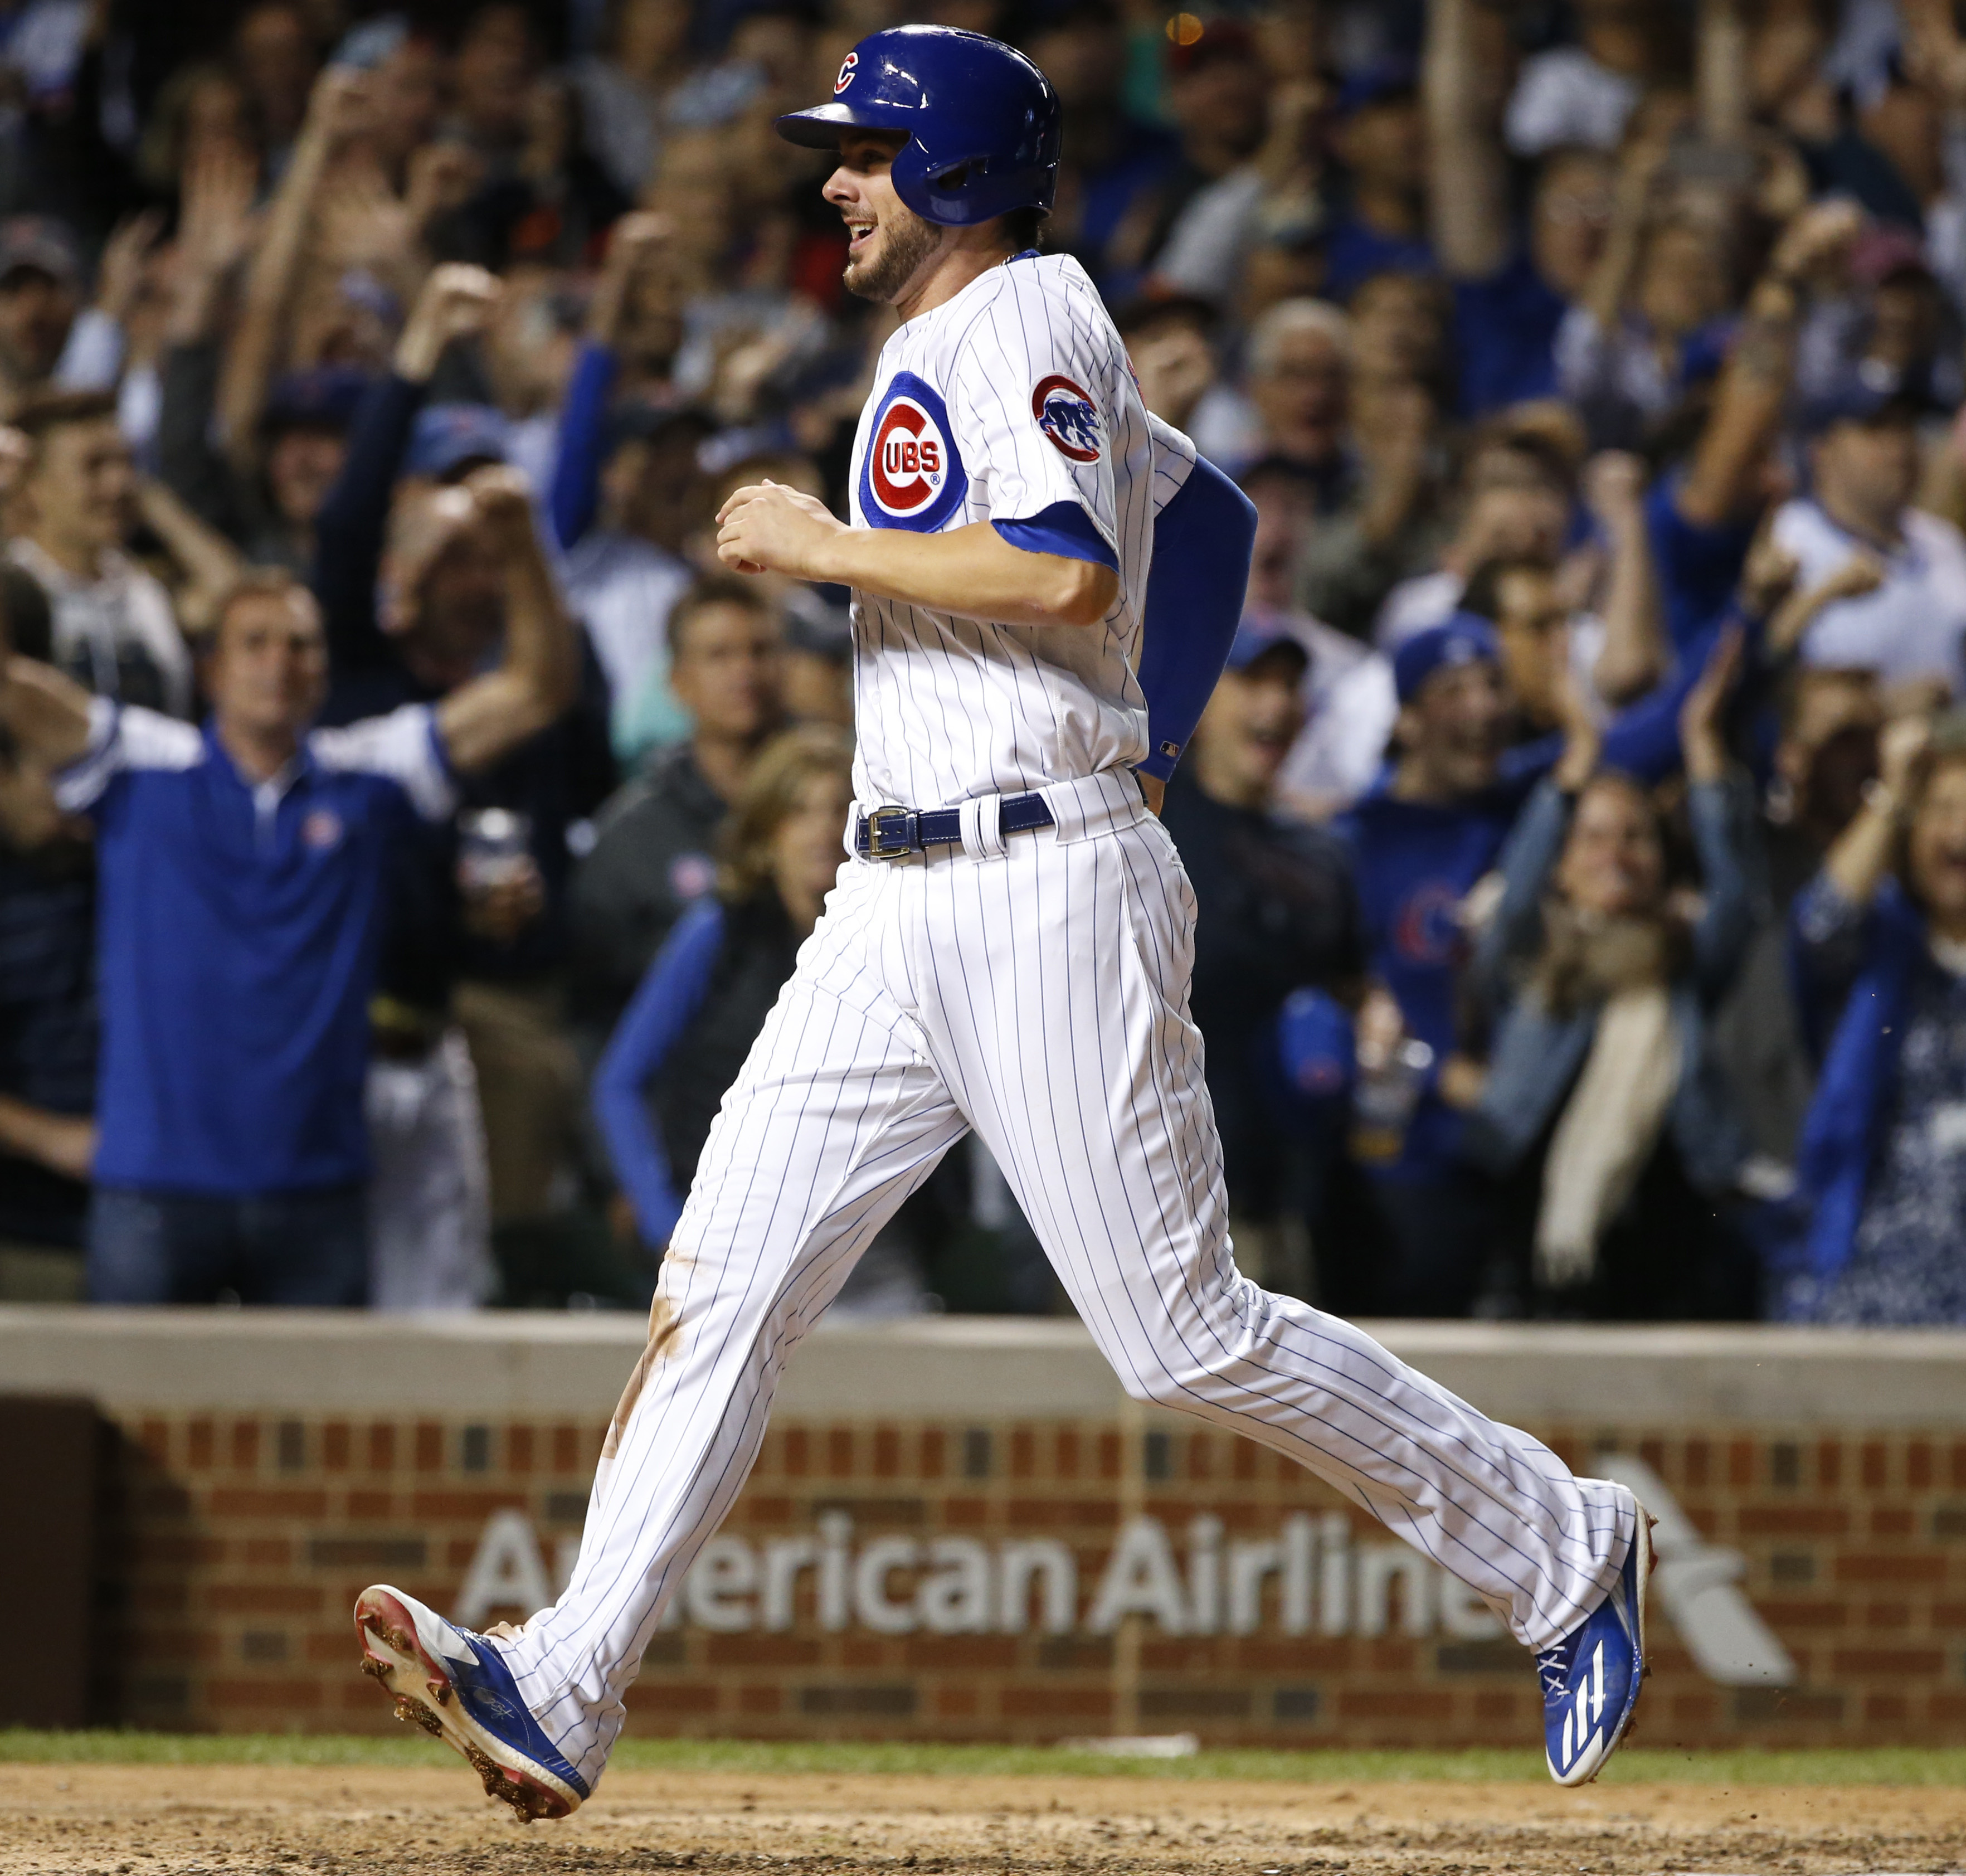 Chicago Cubs' Kris Bryant scores on a single by Addison Russell during the seventh inning of a baseball game against the San Francisco Giants, Thursday, Sept. 1, 2016, in Chicago. (AP Photo/Nam Y. Huh)